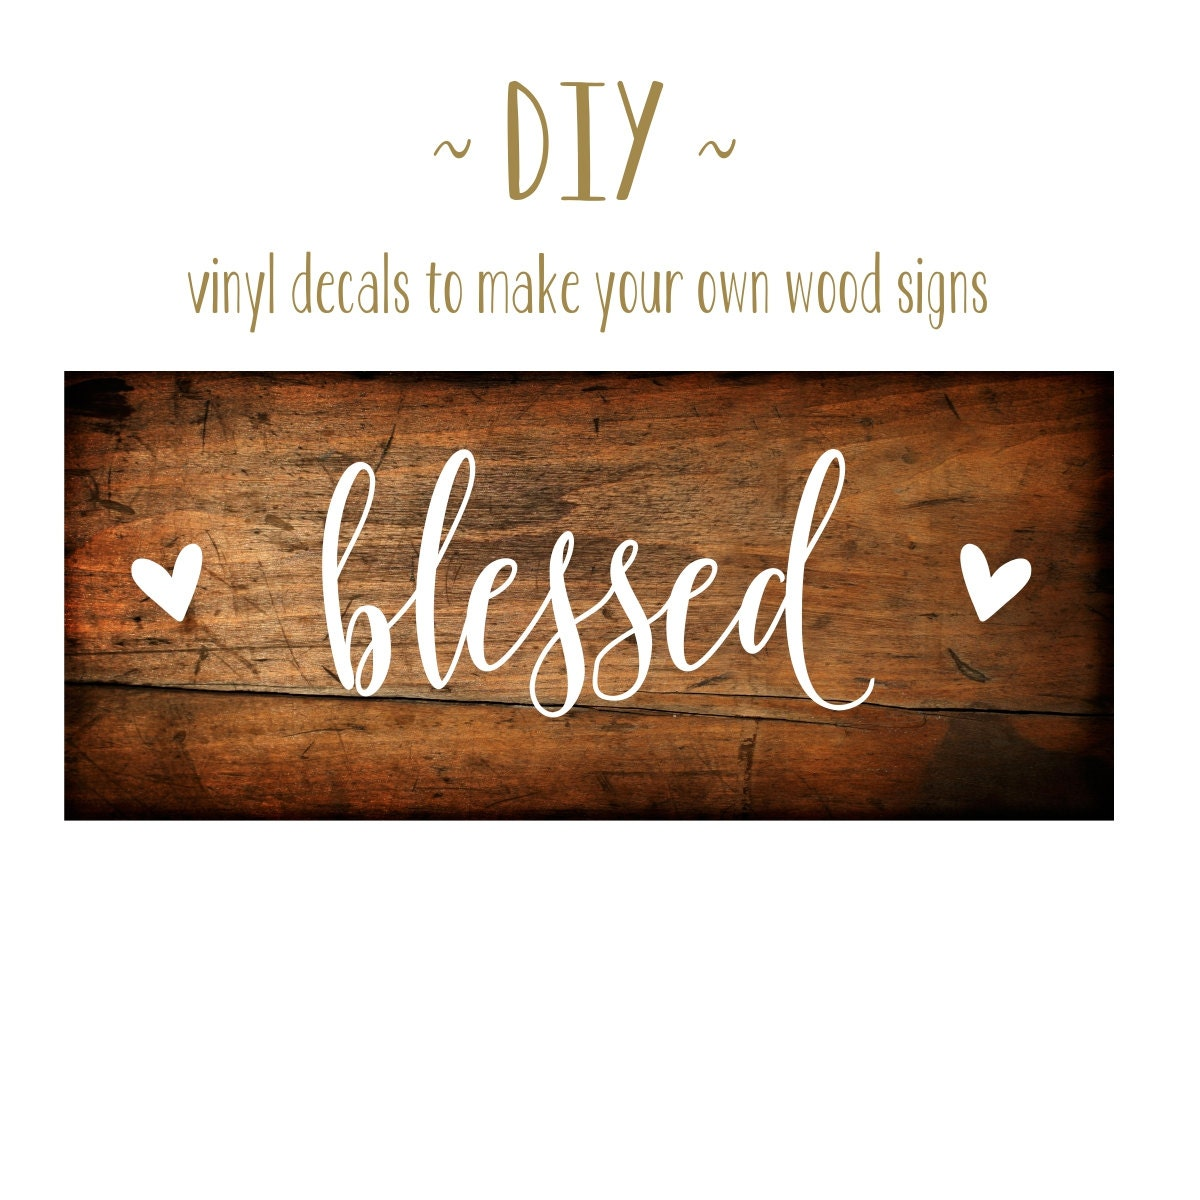 Grateful thankful blessed sign give thanks vinyl decal diy wood